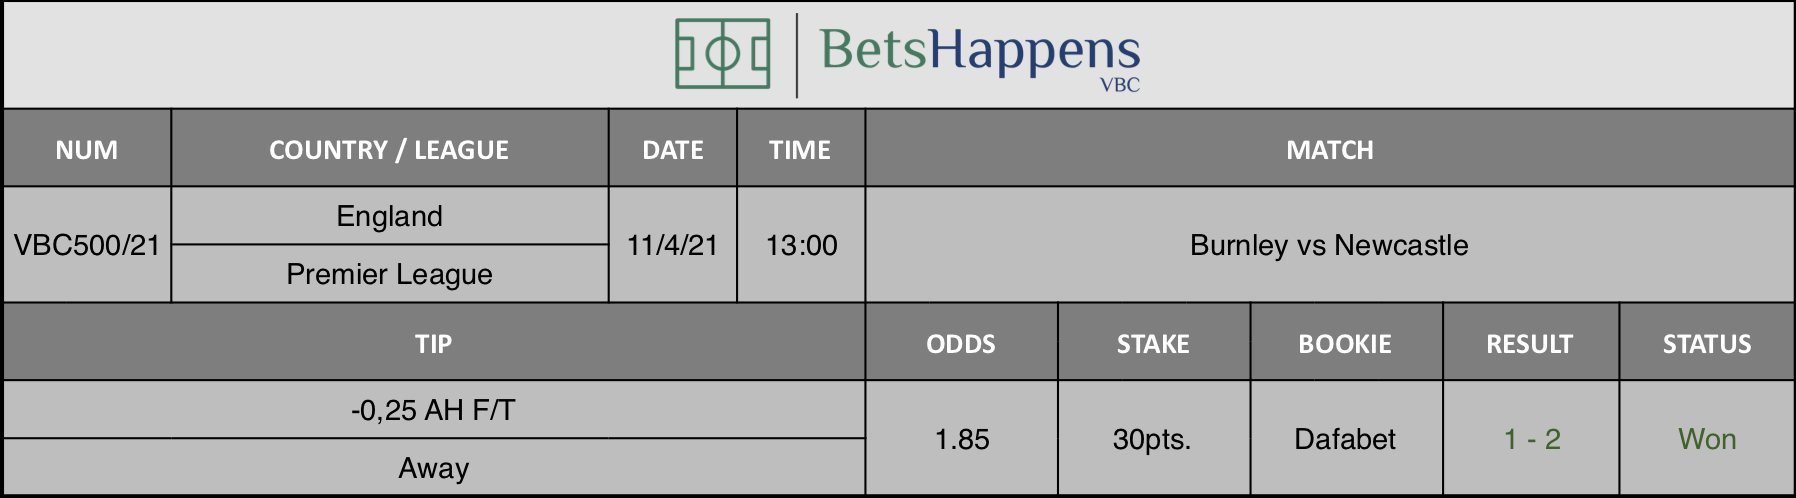 Results of our tip for the Burnley vs Newcastle match where -0,25 AH F/T Away is recommended.